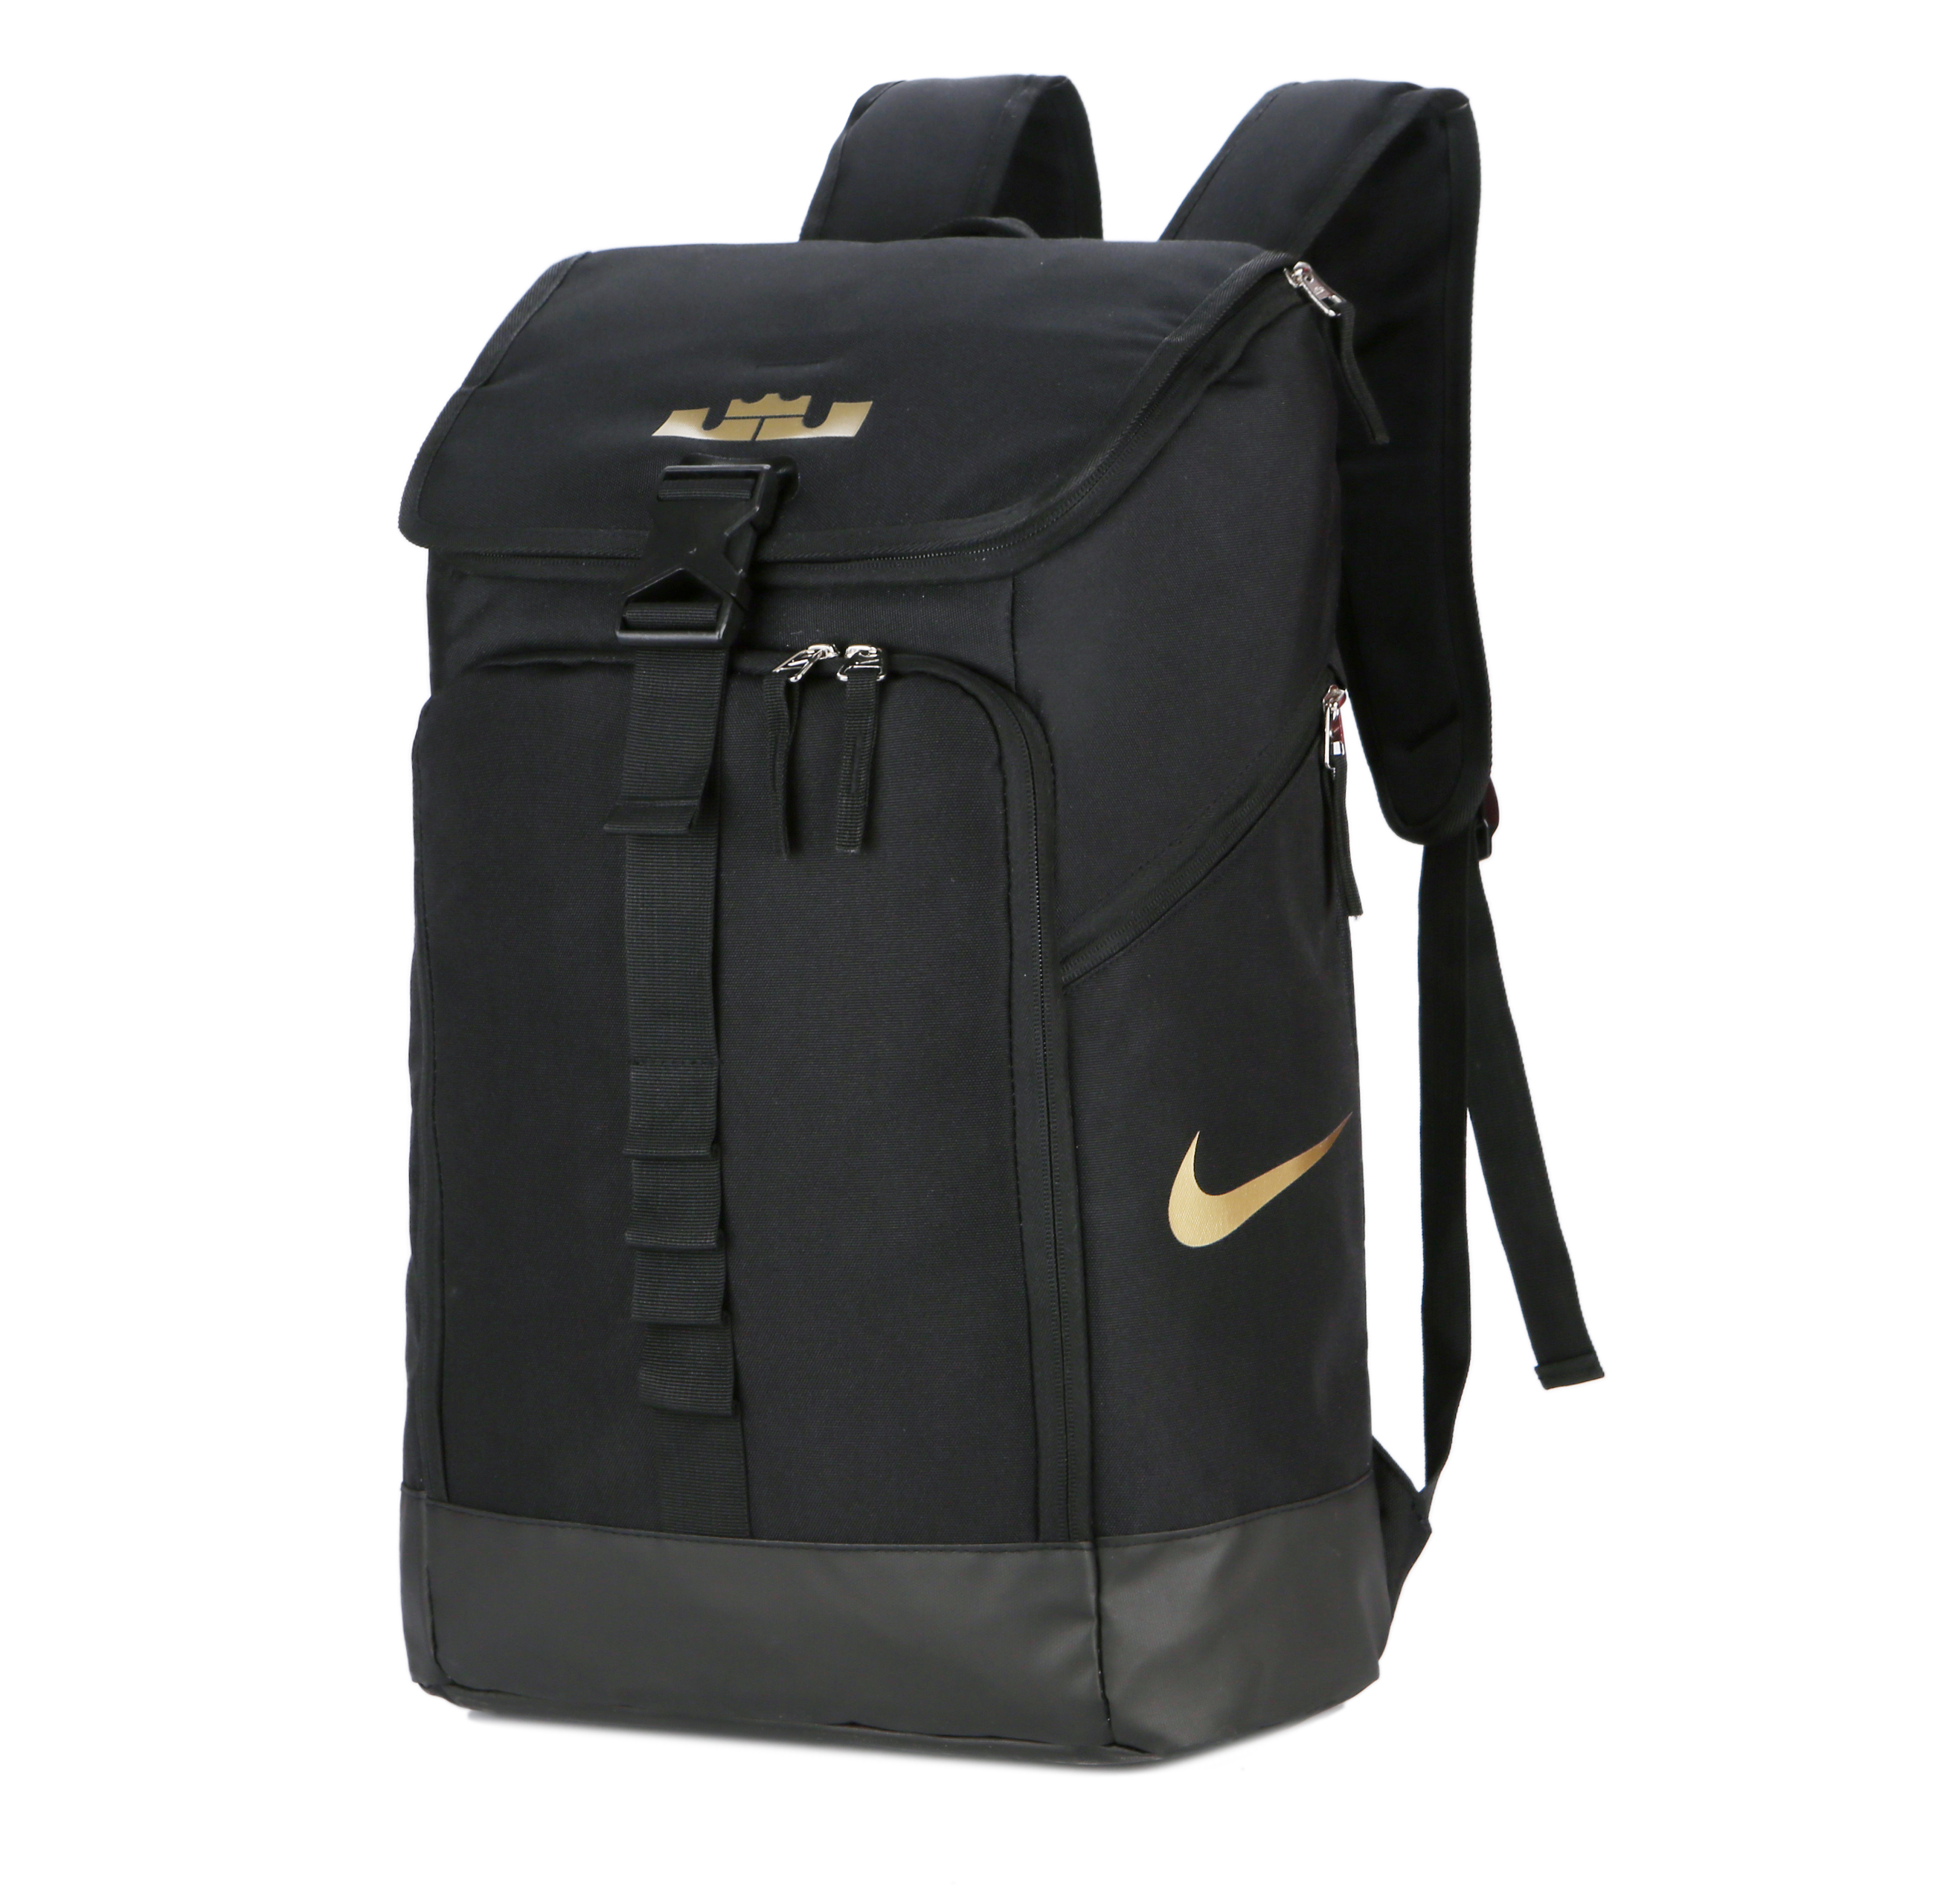 Black Gold Nike LeBron Backpack